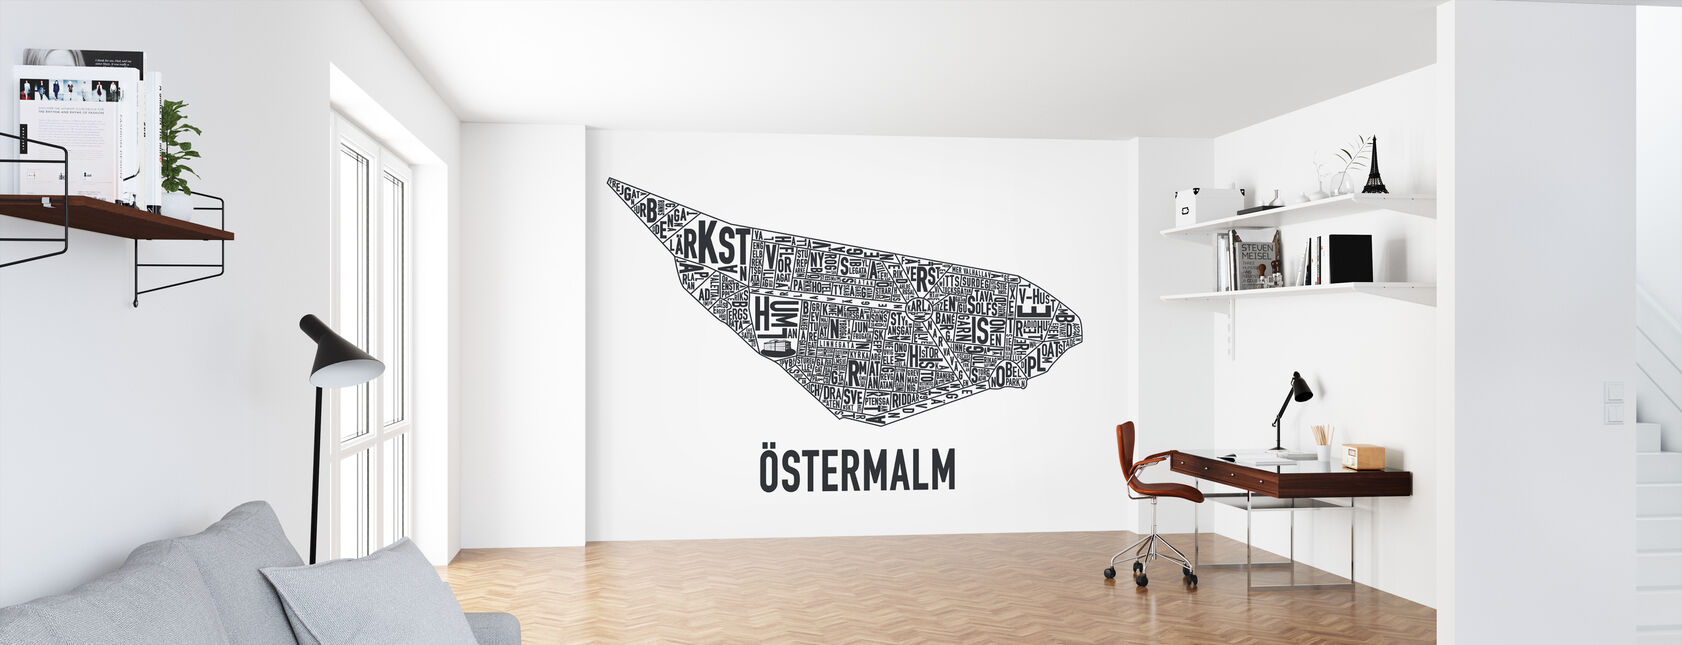 Ostermalm - Wallpaper - Office